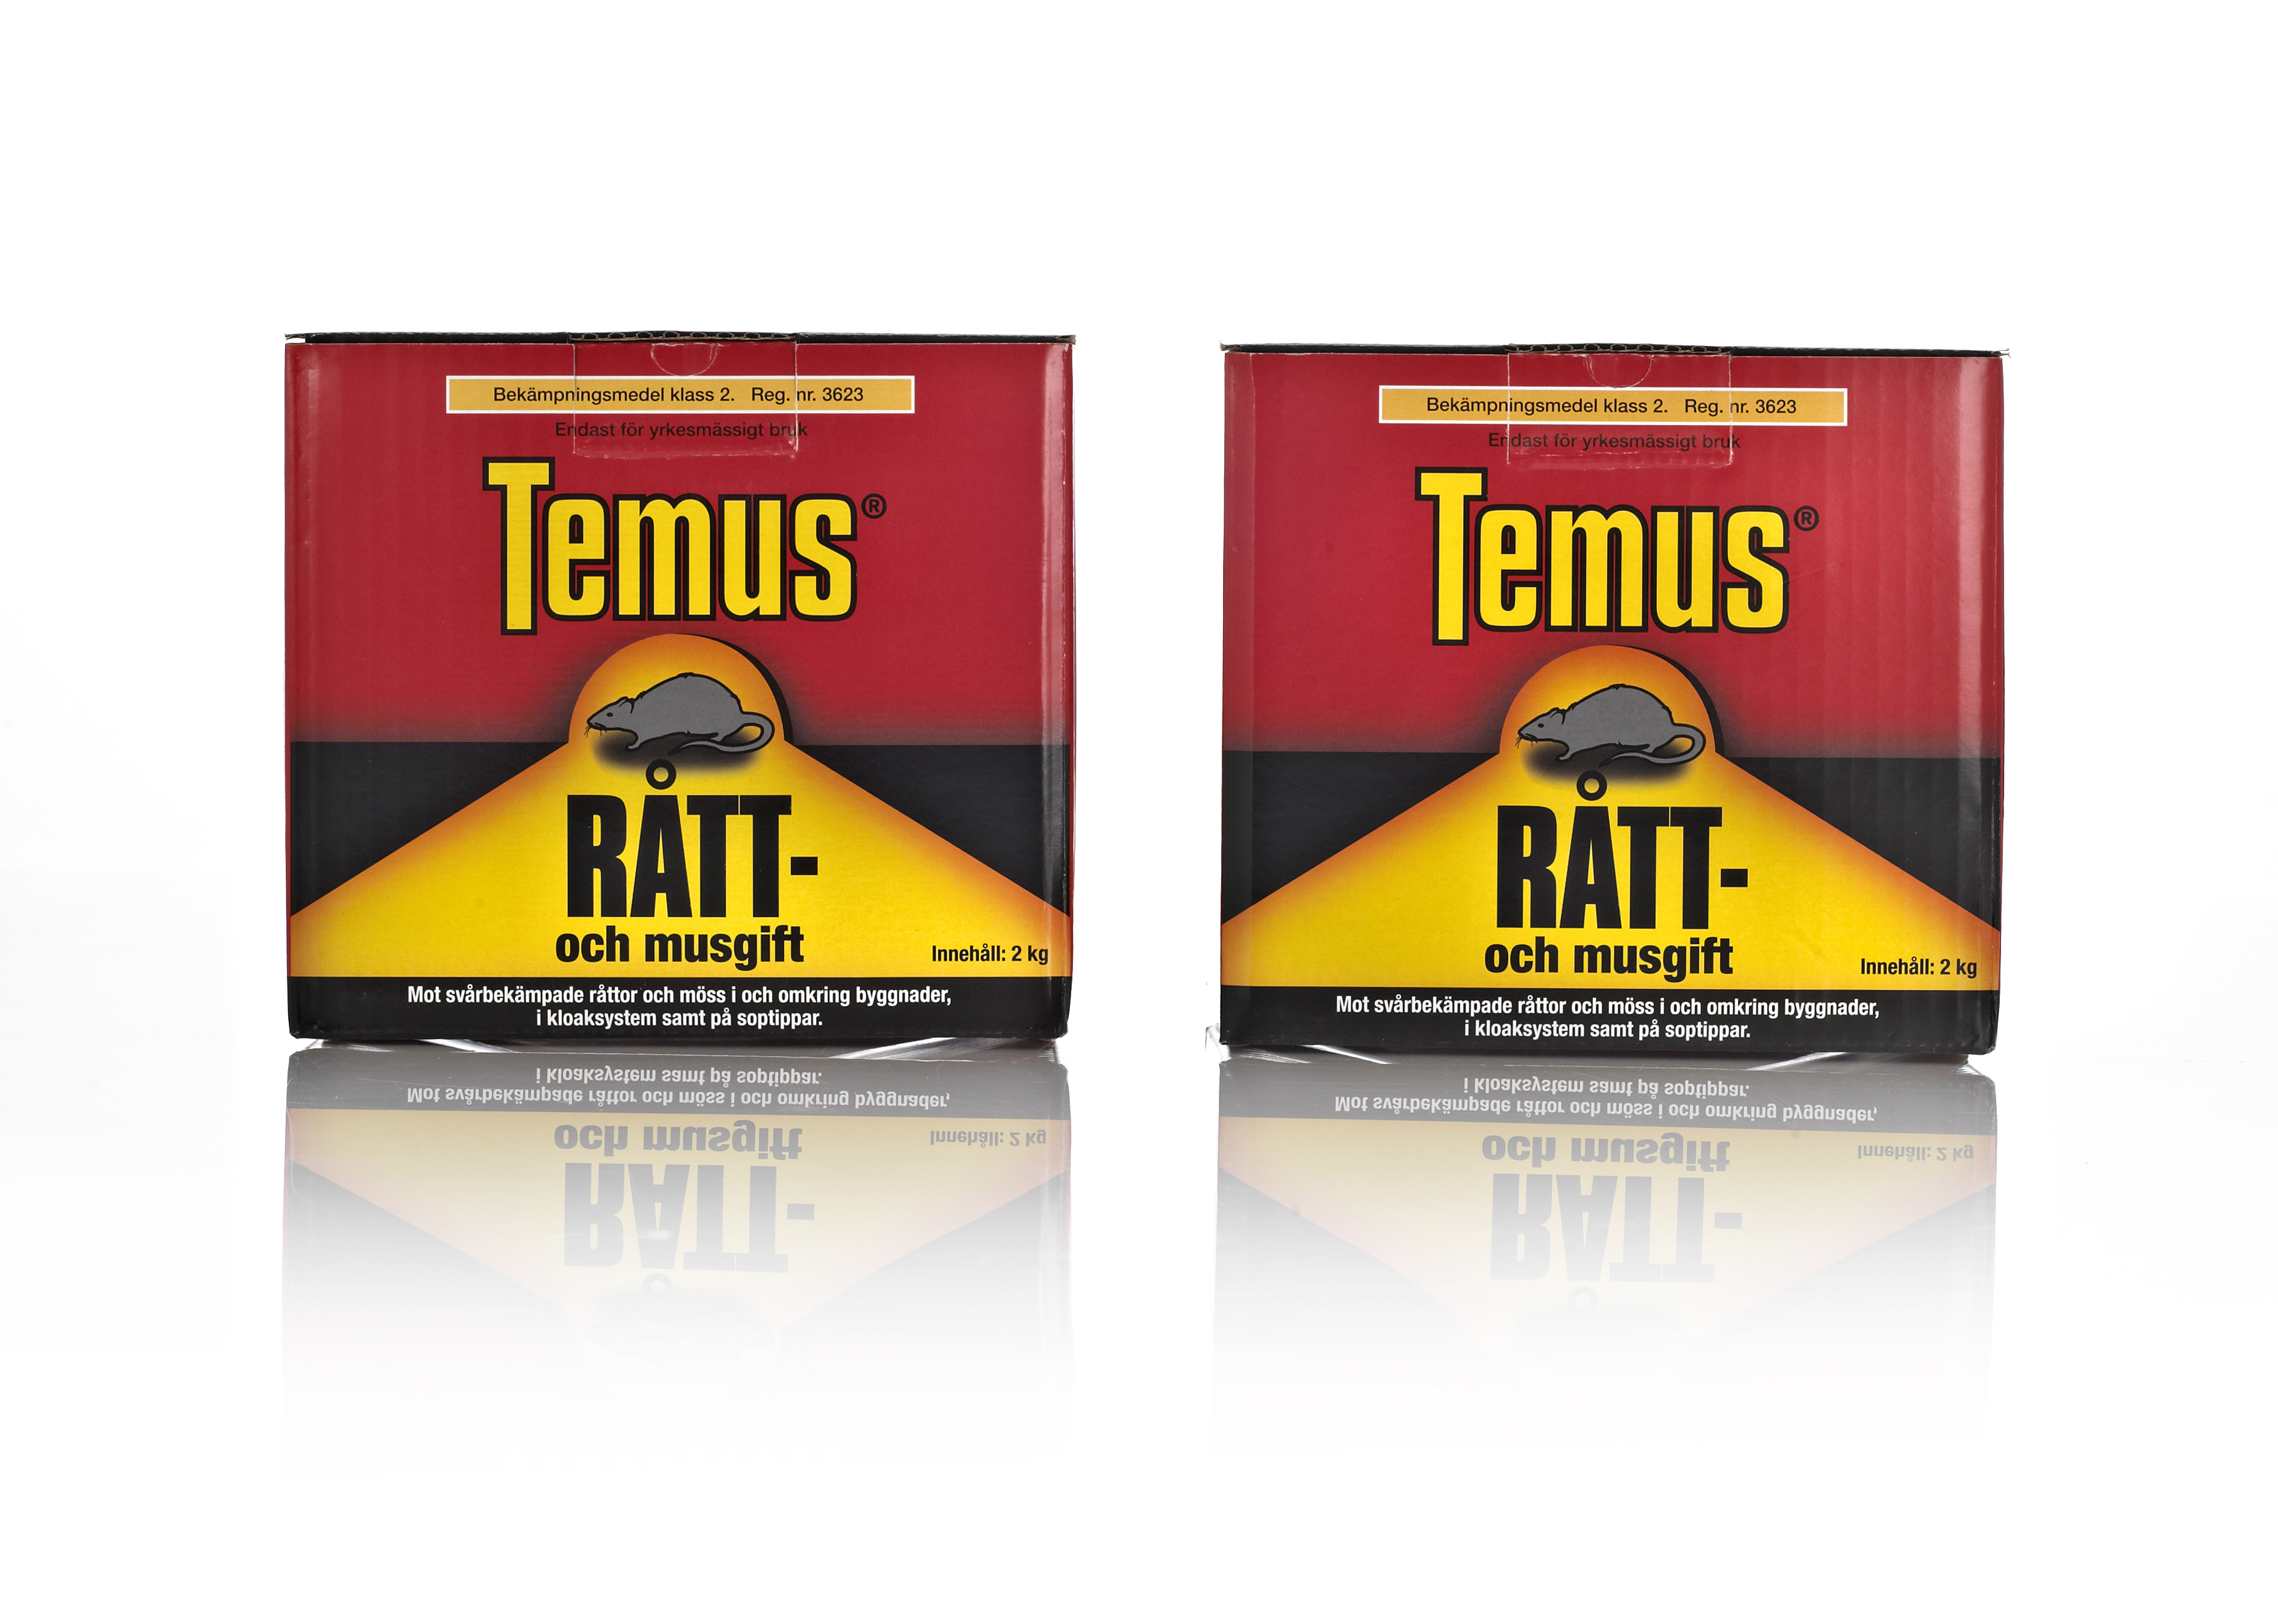 Emballagedesign_Packaging_design_TEMUS_Rottegift